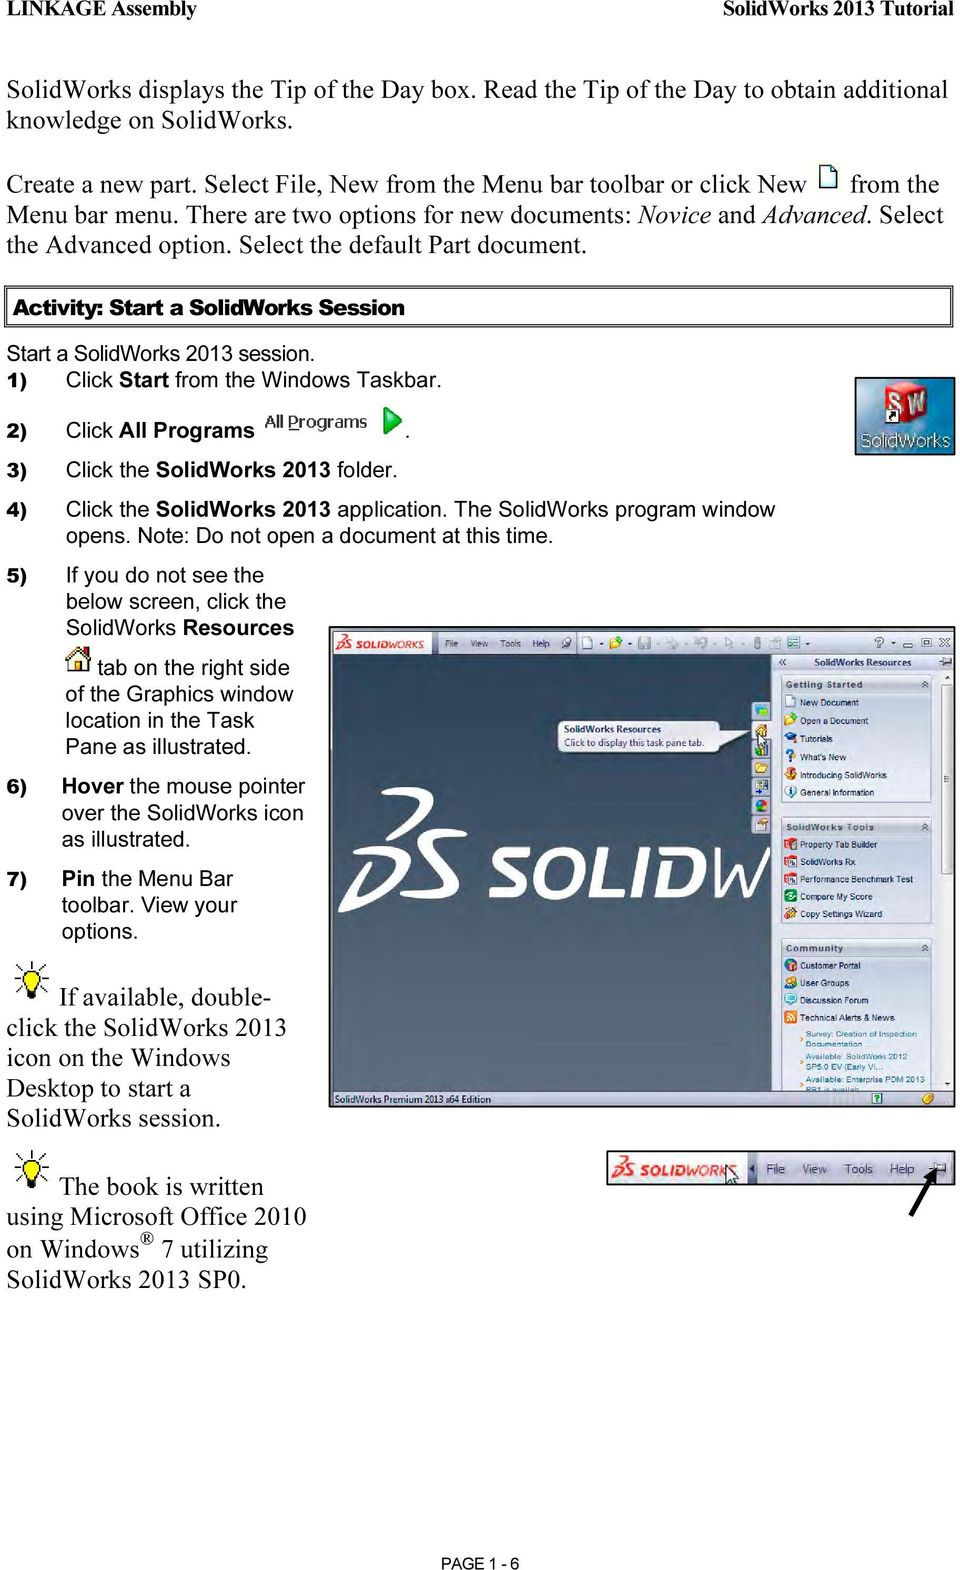 Solidworks 2013 Tutorial With Pdf Free Download